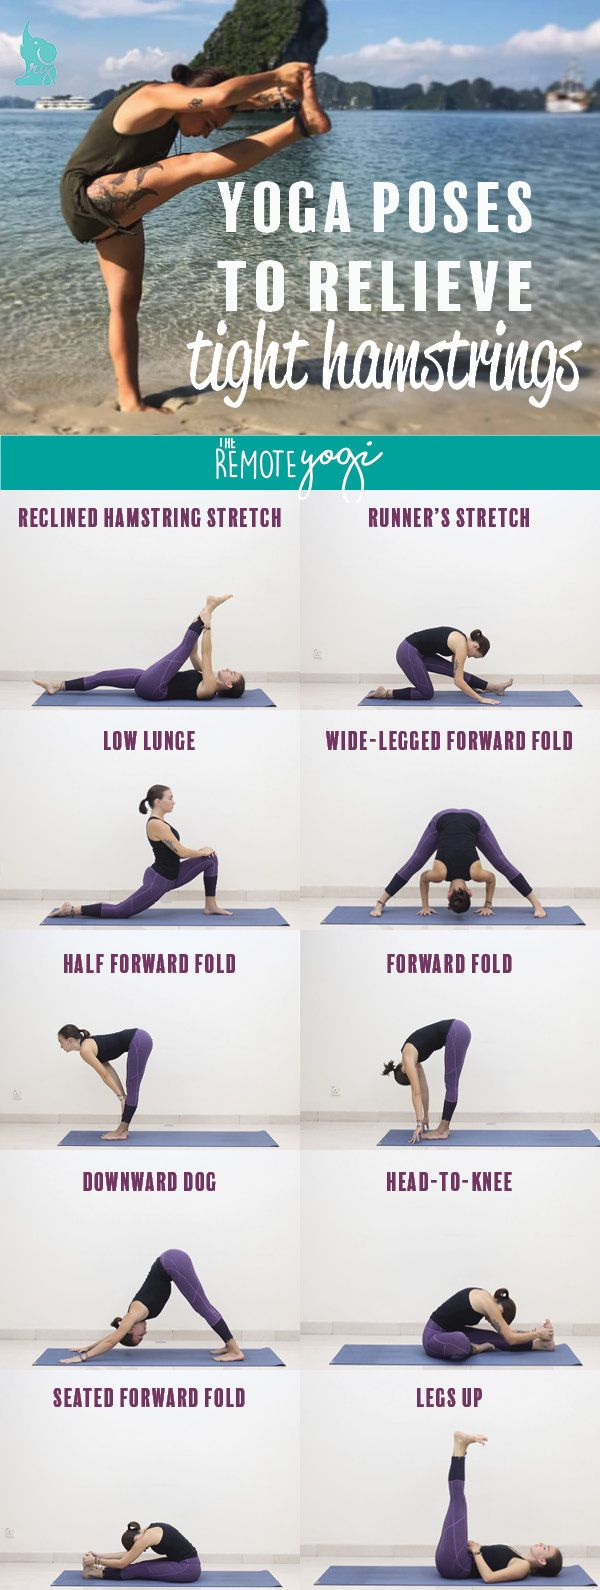 34 Yoga Poses to Relieve Tight Hamstrings  How to do yoga, Yoga